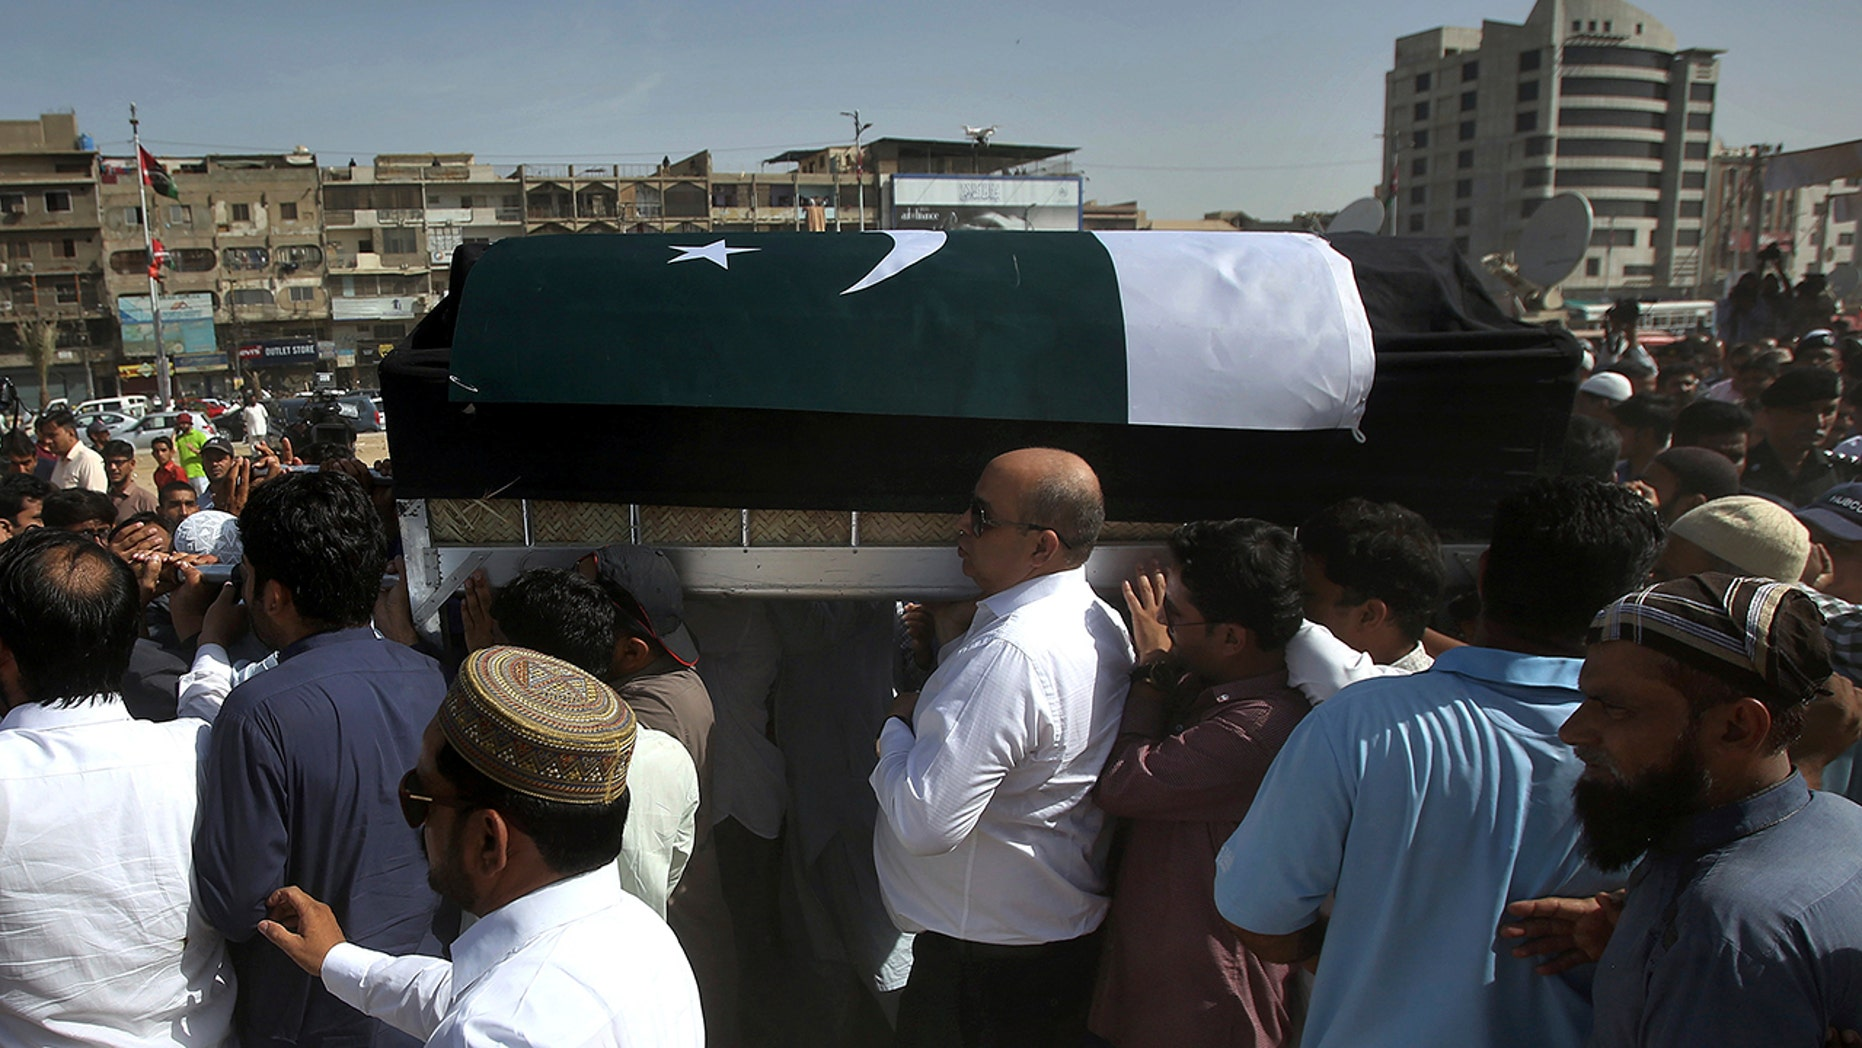 People carry the coffin of Sabika Sheikh, the Pakistani exchange student killed in a mass shooting at a high school in Texas, after offering funeral prayers in Karachi, Pakistan, Wednesday, May 23, 2018. Her body has arrived in the port city of Karachi, where her family lived and where she isbeing buried. (AP Photo/Fareed Khan)